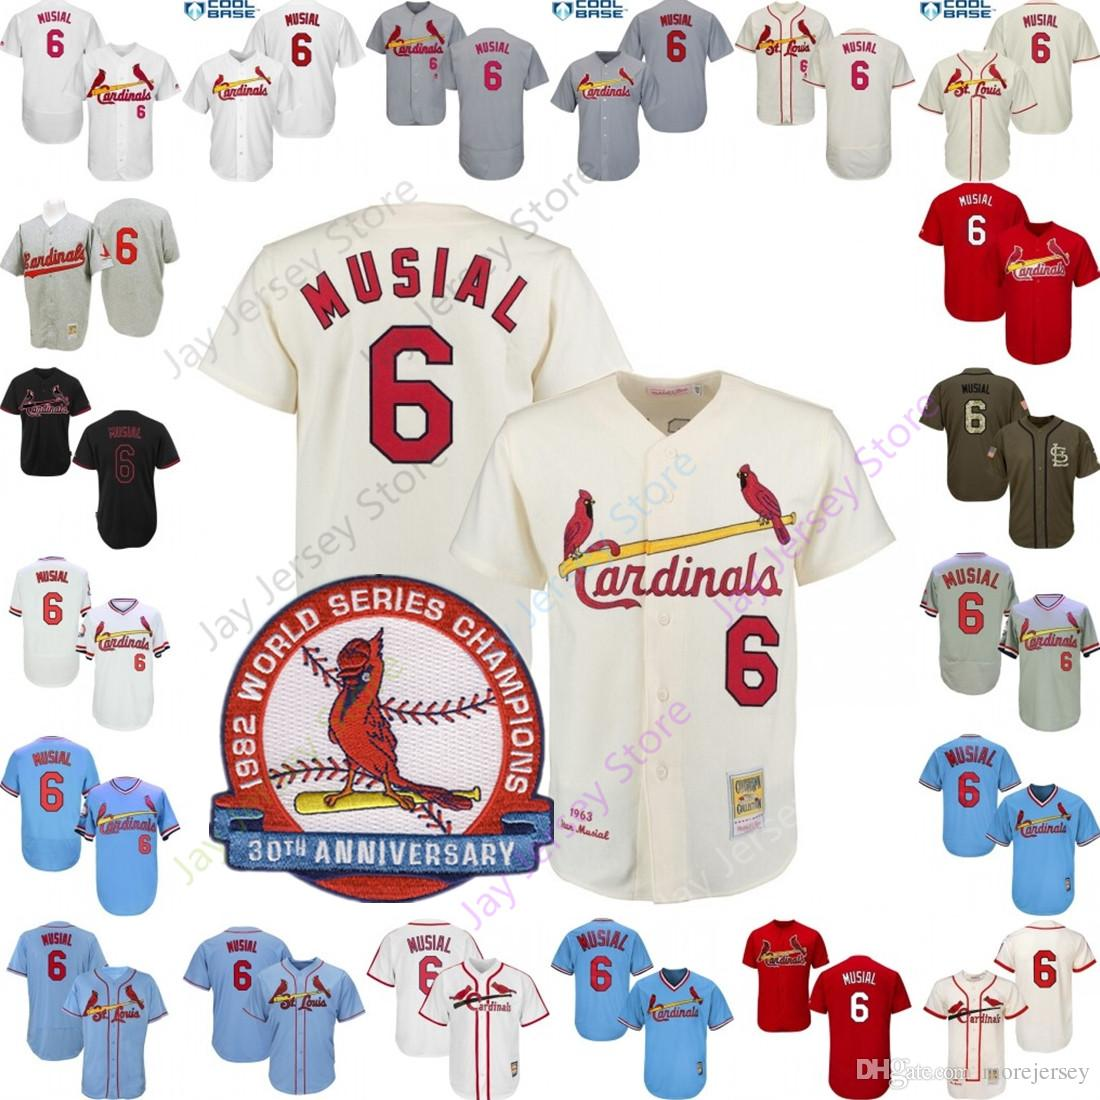 buy popular 4f138 ac291 Stan Musial Jersey Men Women Youth Cardinals Cooperstown St. Louis Jersey  Home Away Cream White Grey Black Blue